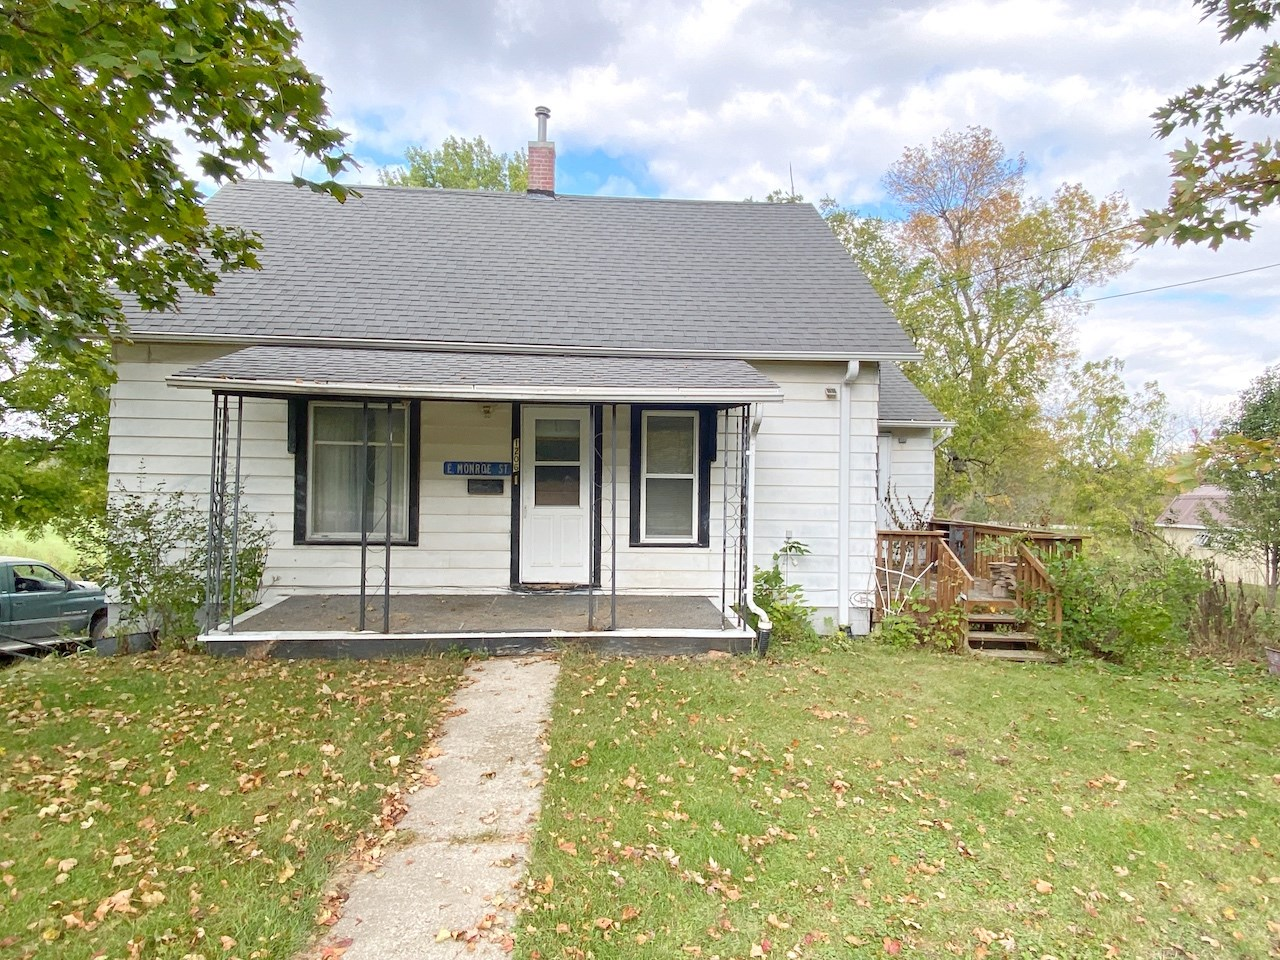 Affordable Home For Sale Mount Ayr Iowa Investment Property